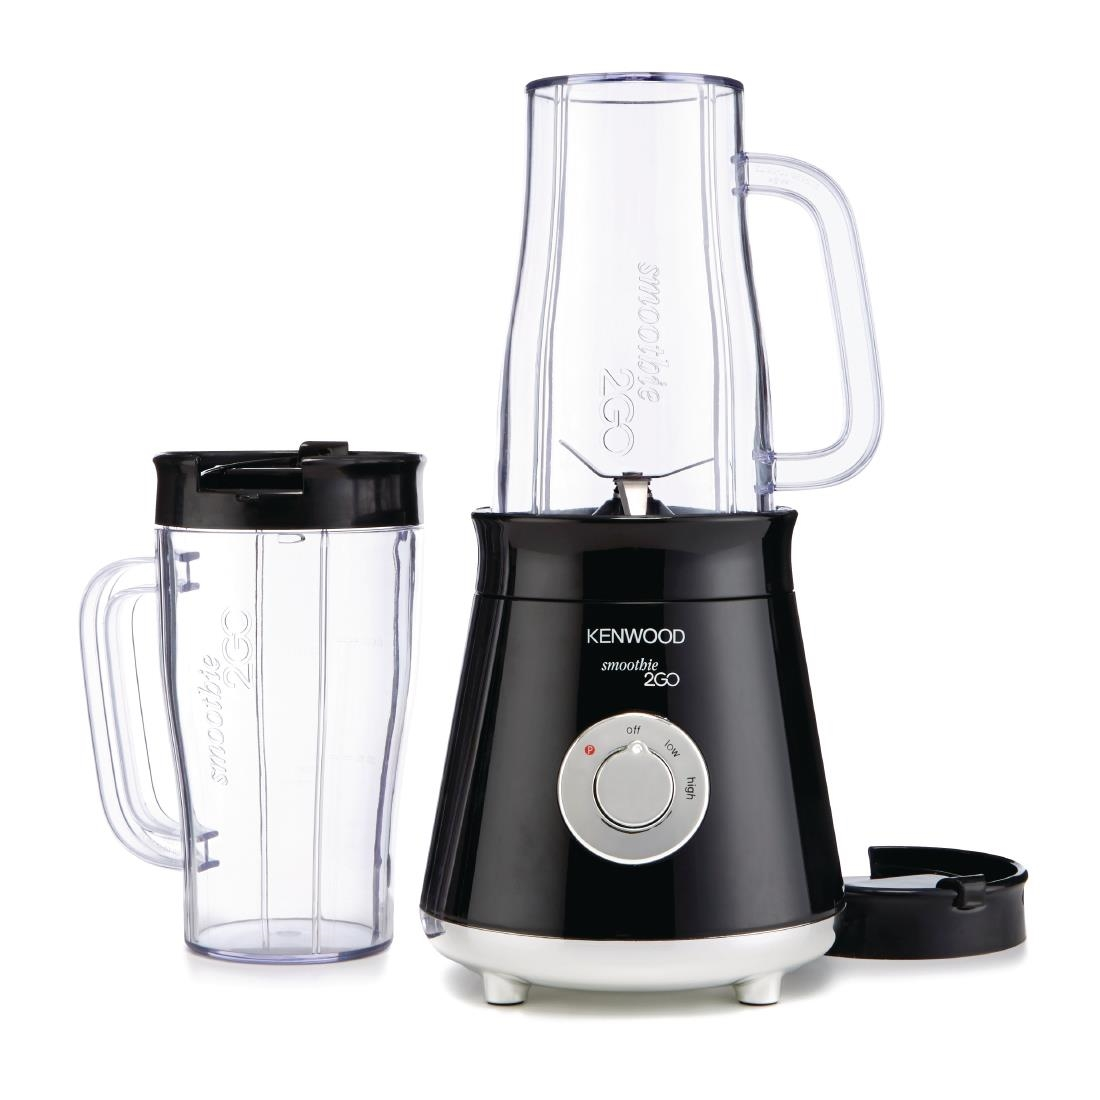 Image of Kenwood BlendXtract Smoothie Maker SB056